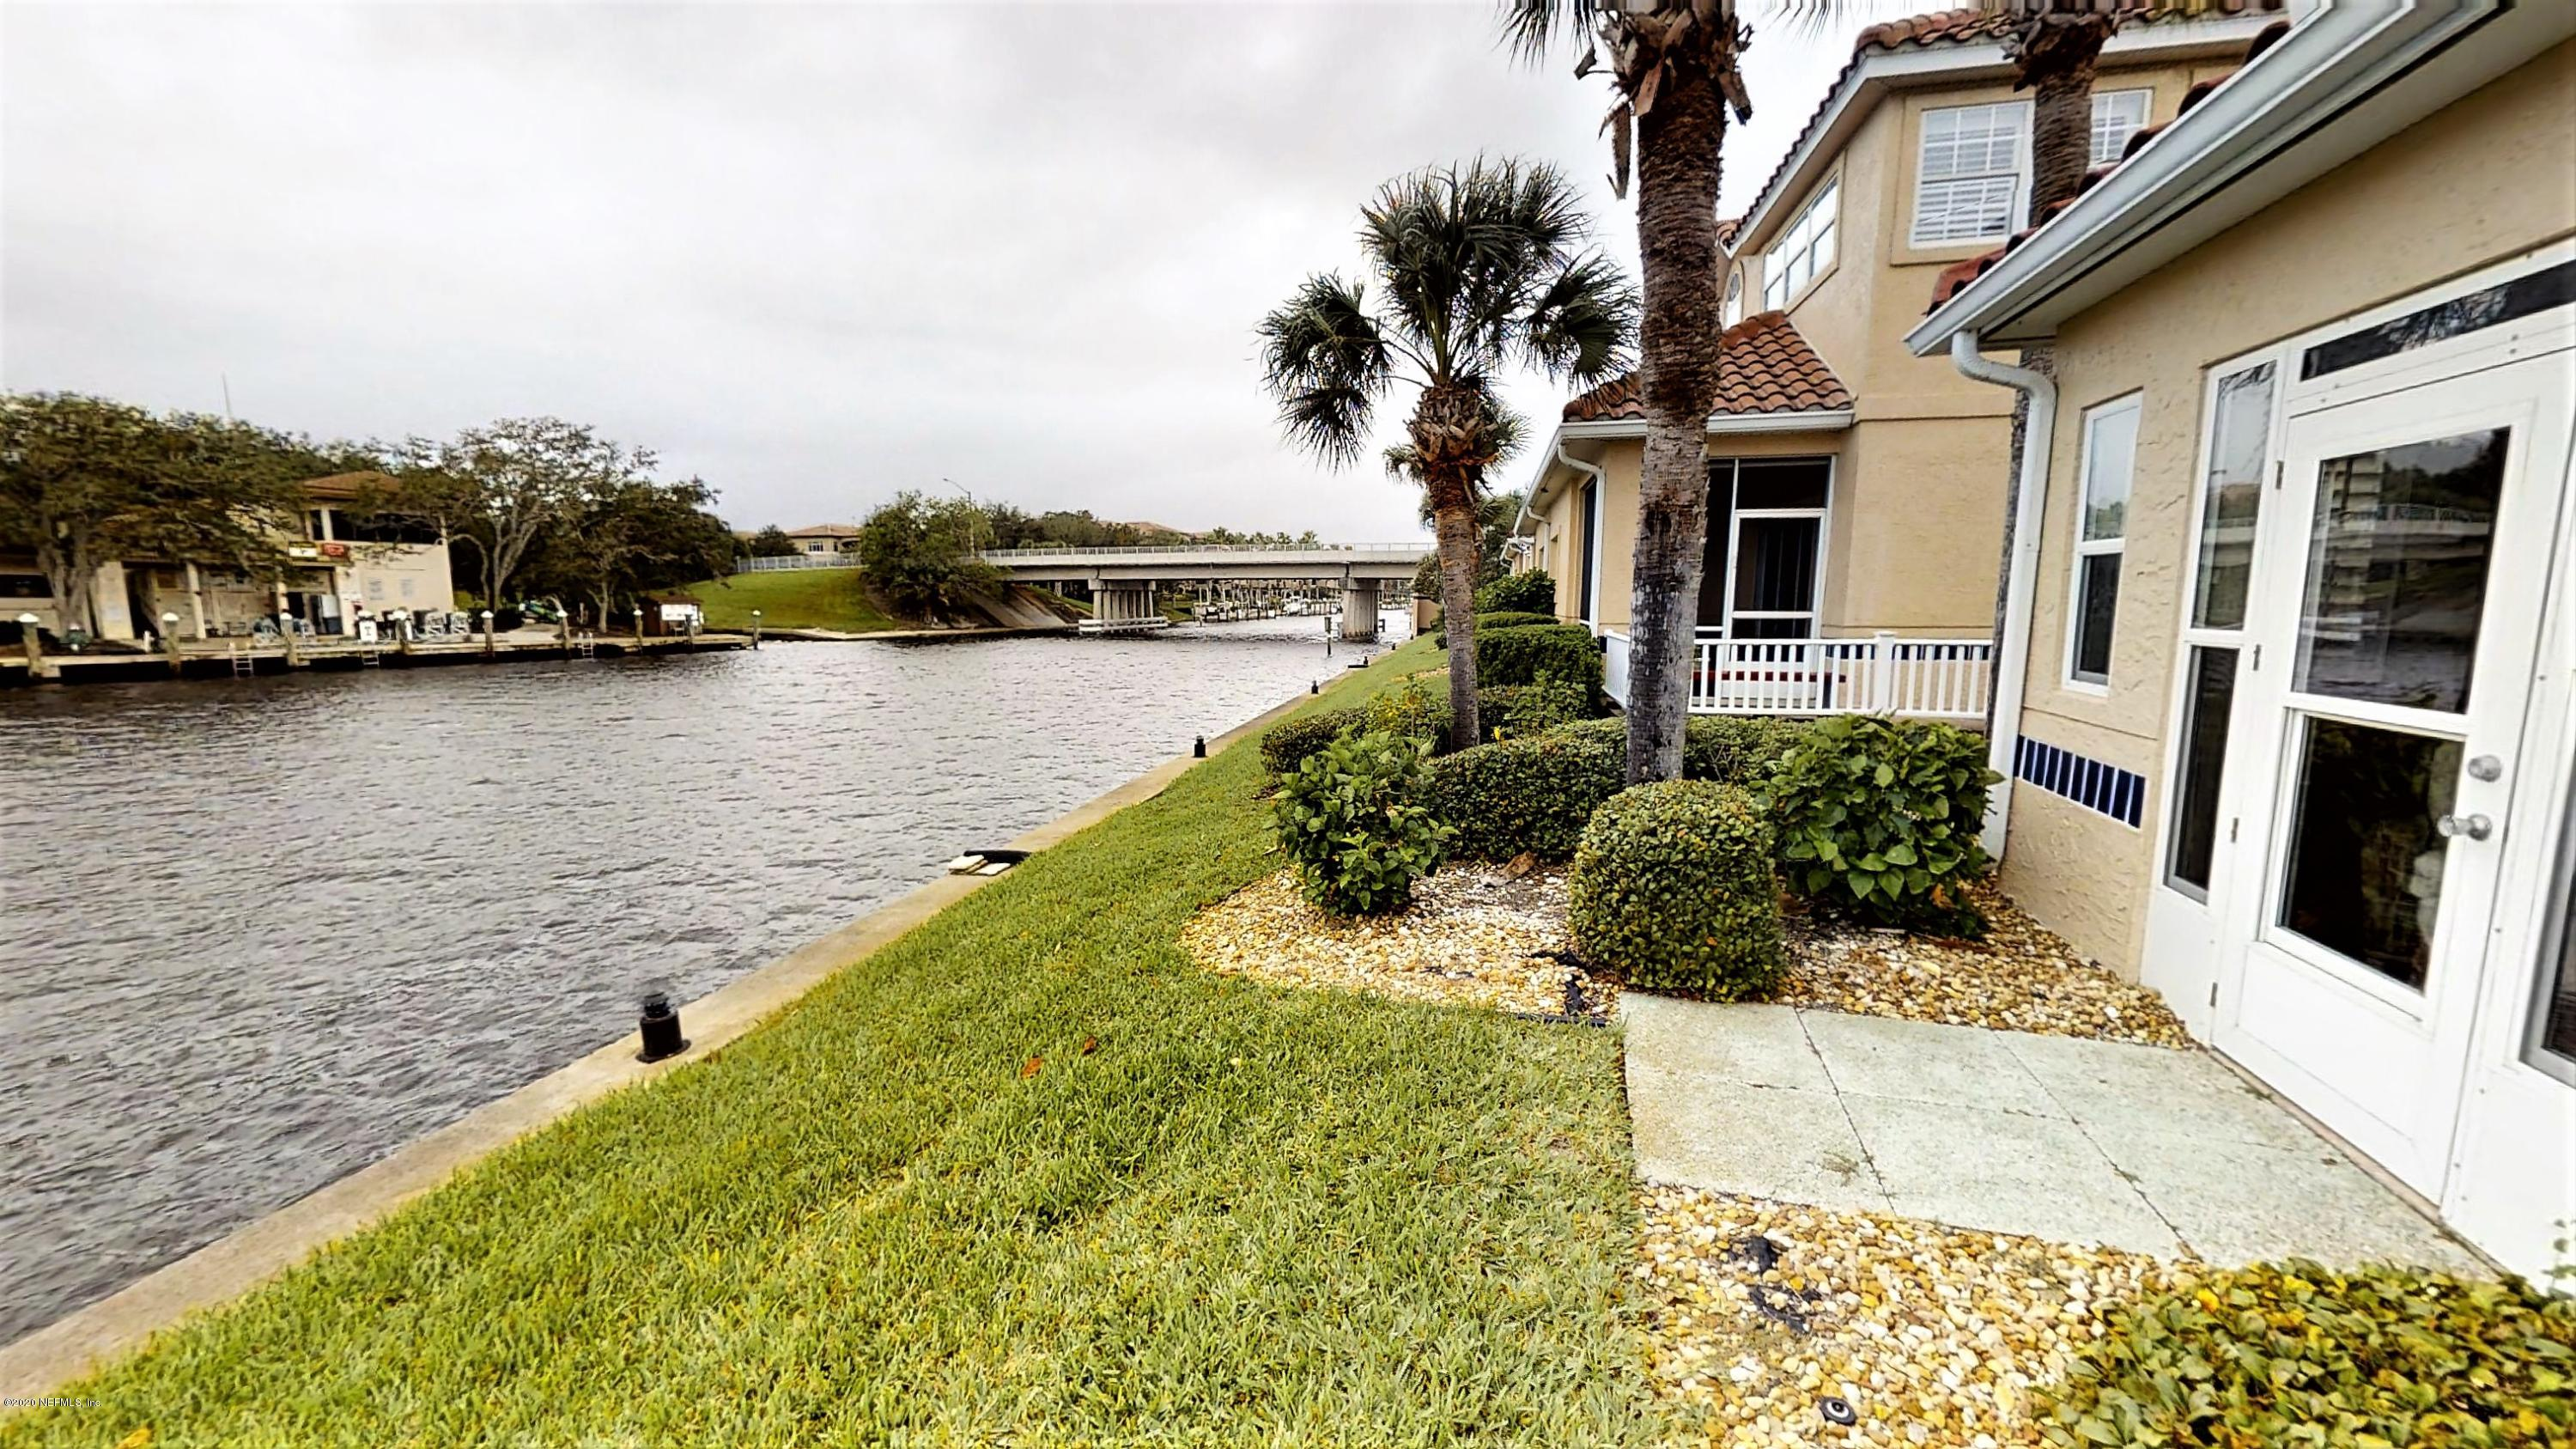 6 MARINA POINT, PALM COAST, FLORIDA 32137, 3 Bedrooms Bedrooms, ,2 BathroomsBathrooms,Residential,For sale,MARINA POINT,1082216